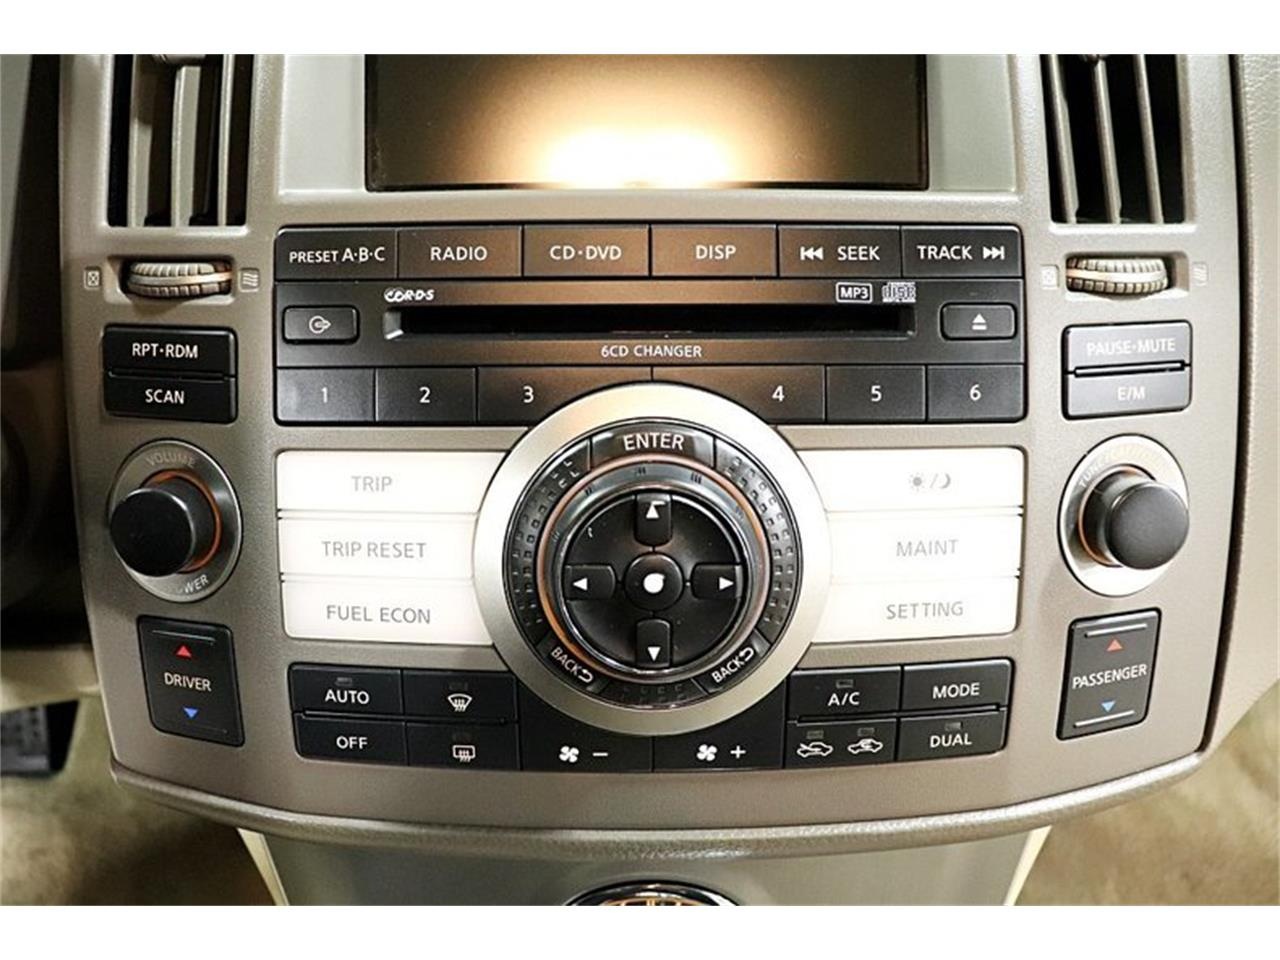 Large Picture of 2008 Infiniti FX35 located in Kentwood Michigan - $7,900.00 - PY0U